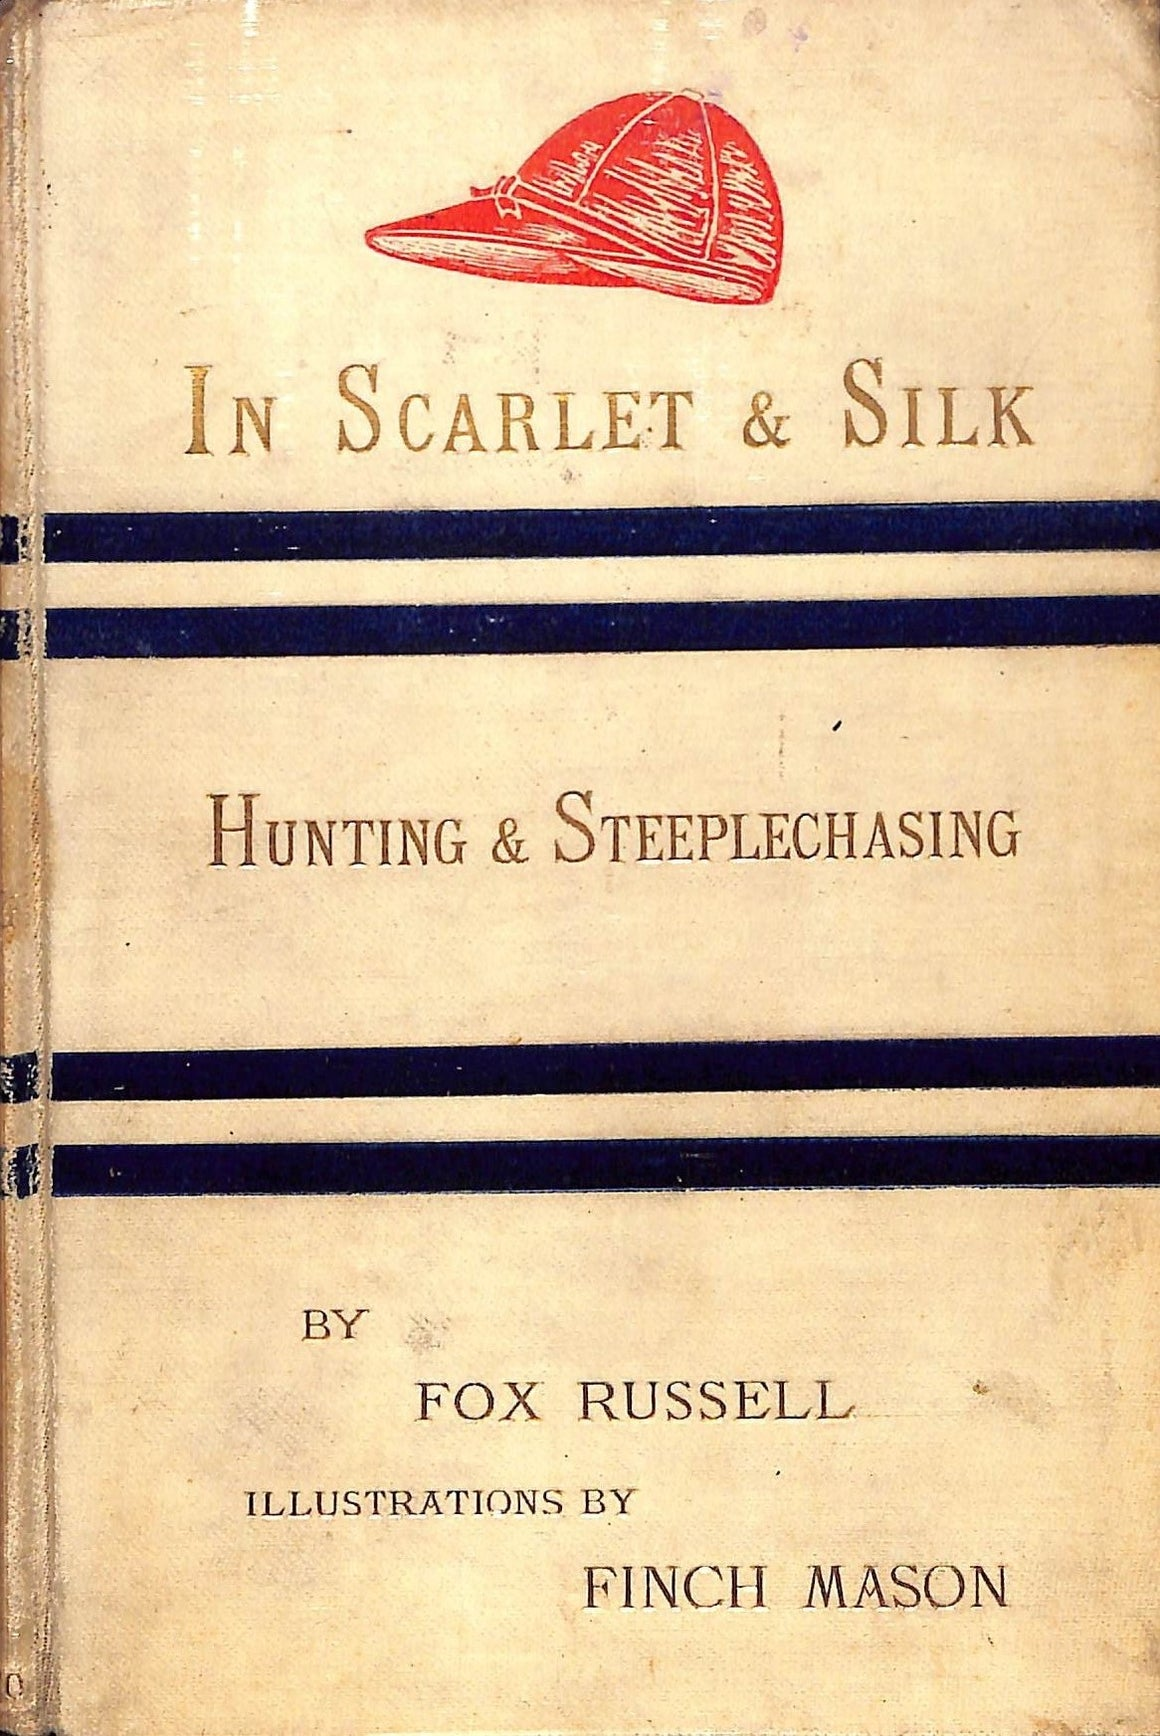 """In Scarlet & Silk: Hunting & Steeplechasing"" RUSSELL, Fox"